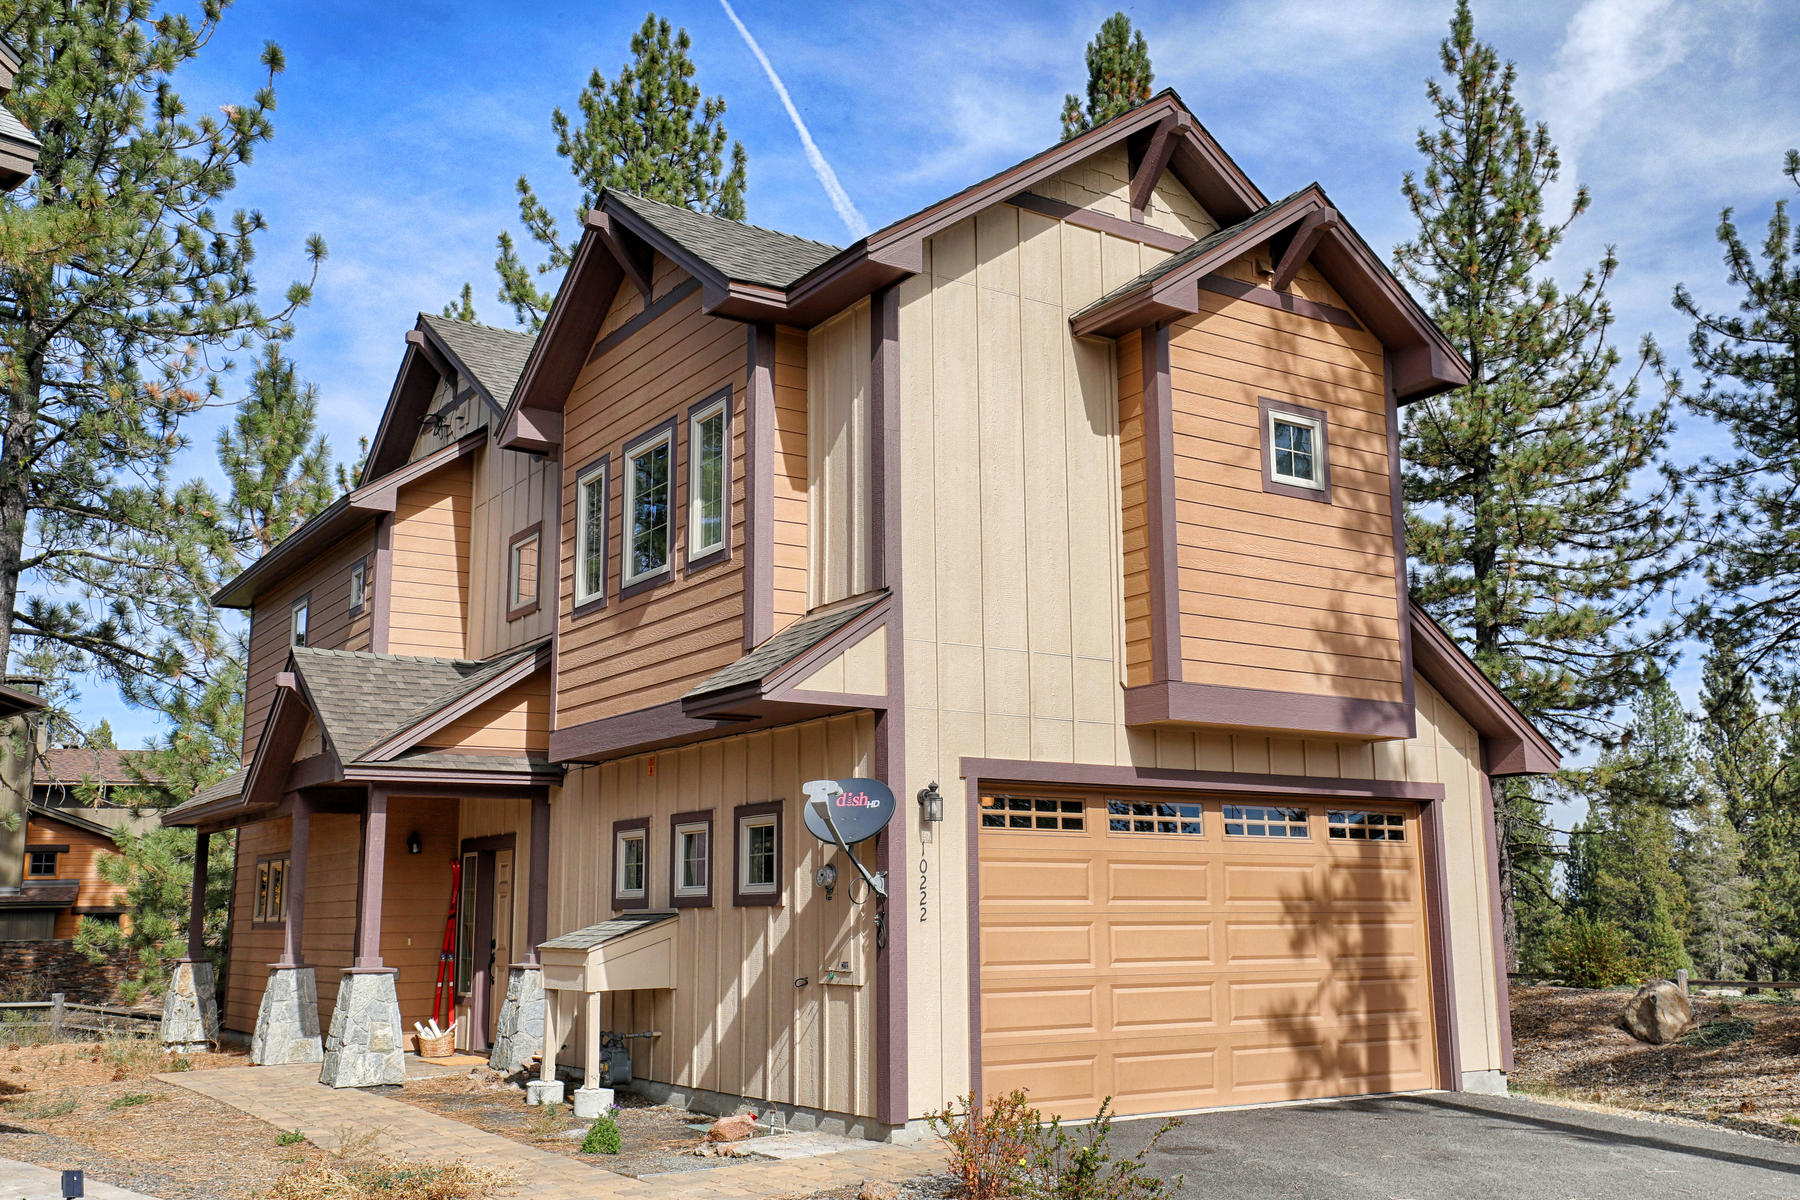 Single Family Home for Active at 10222 Fall Court, Truckee, CA 10222 Fall Court Truckee, California 96161 United States